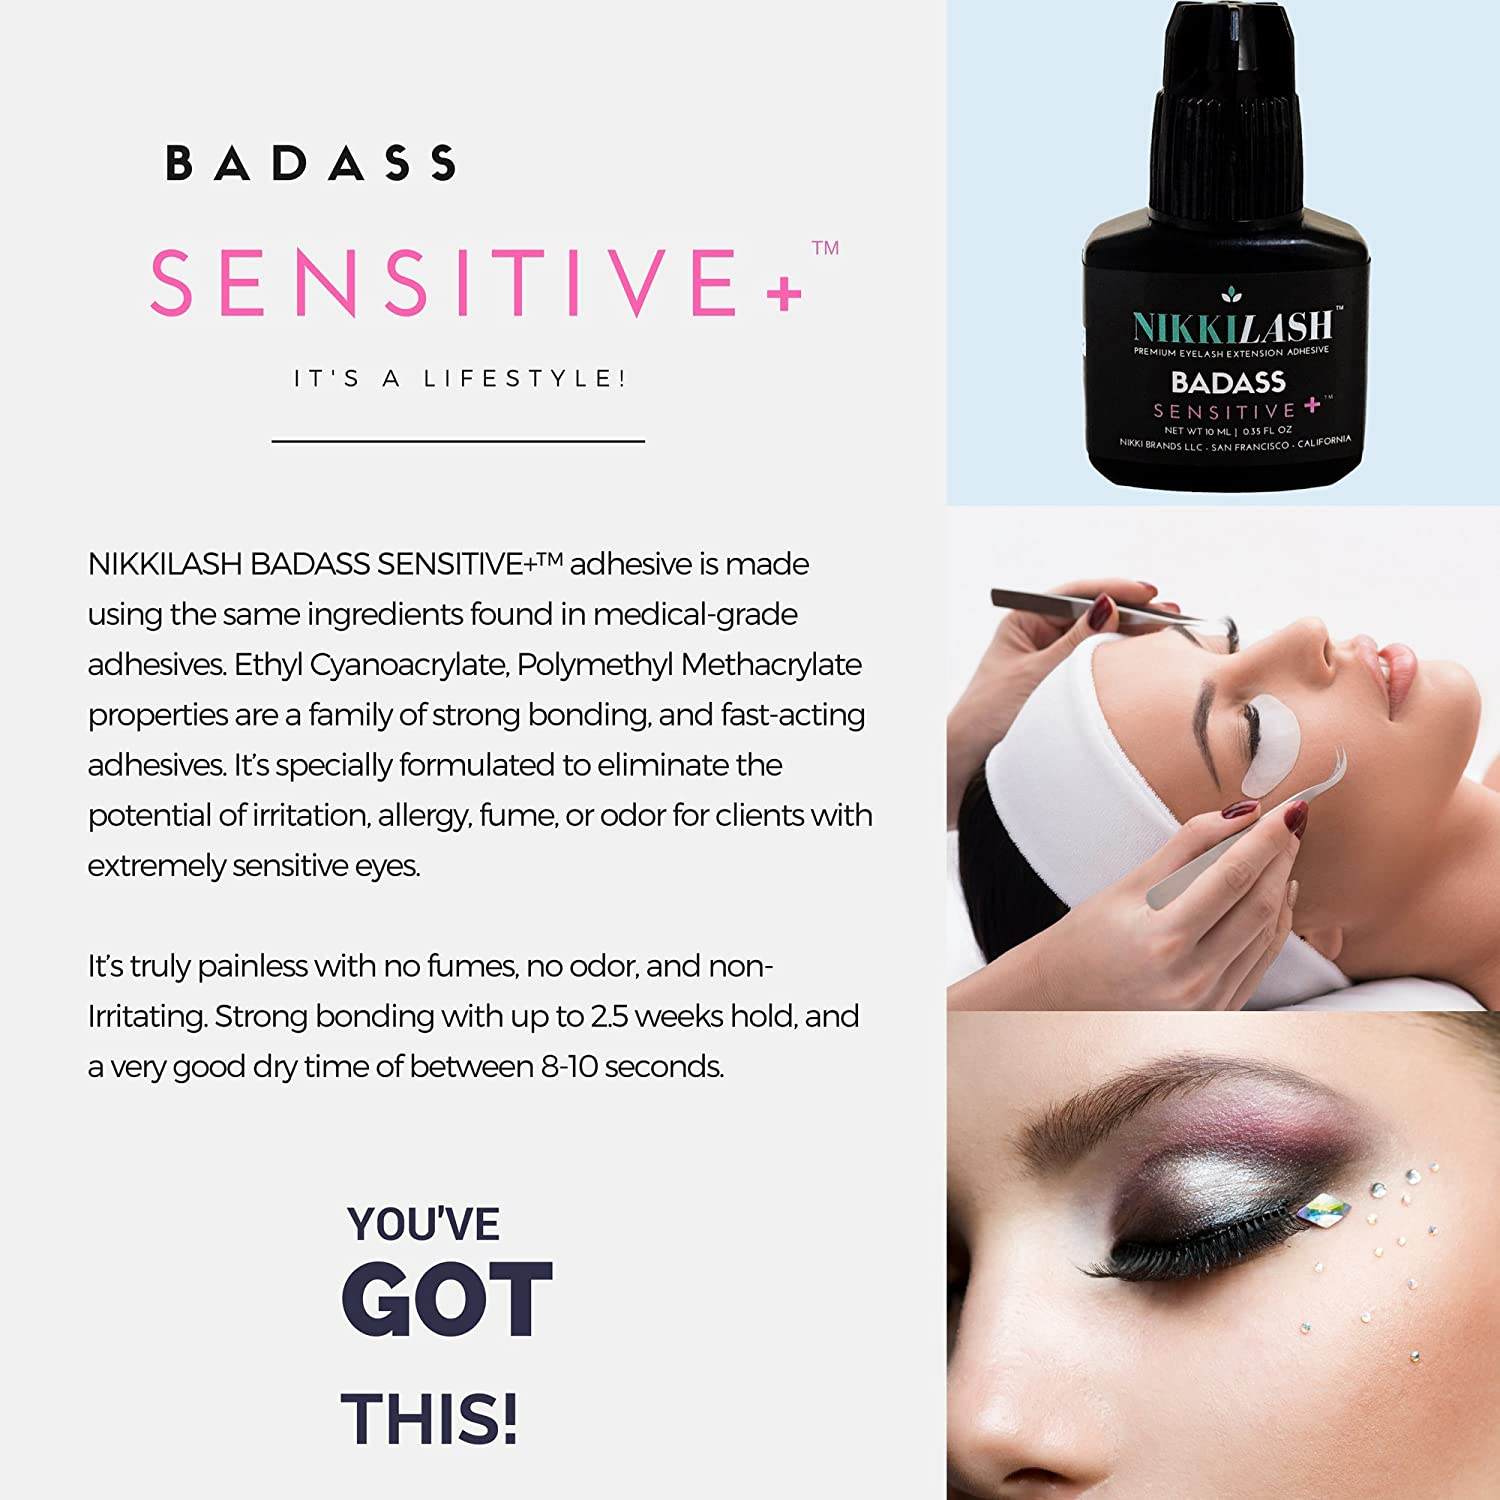 de6c72c680b Amazon.com : NIKKILASH BADASS SENSITIVE+ Eyelash Extension Glue |  Latex-free For Extreme Sensitive Allergy Clients - Formulated to Increase  Durability and ...